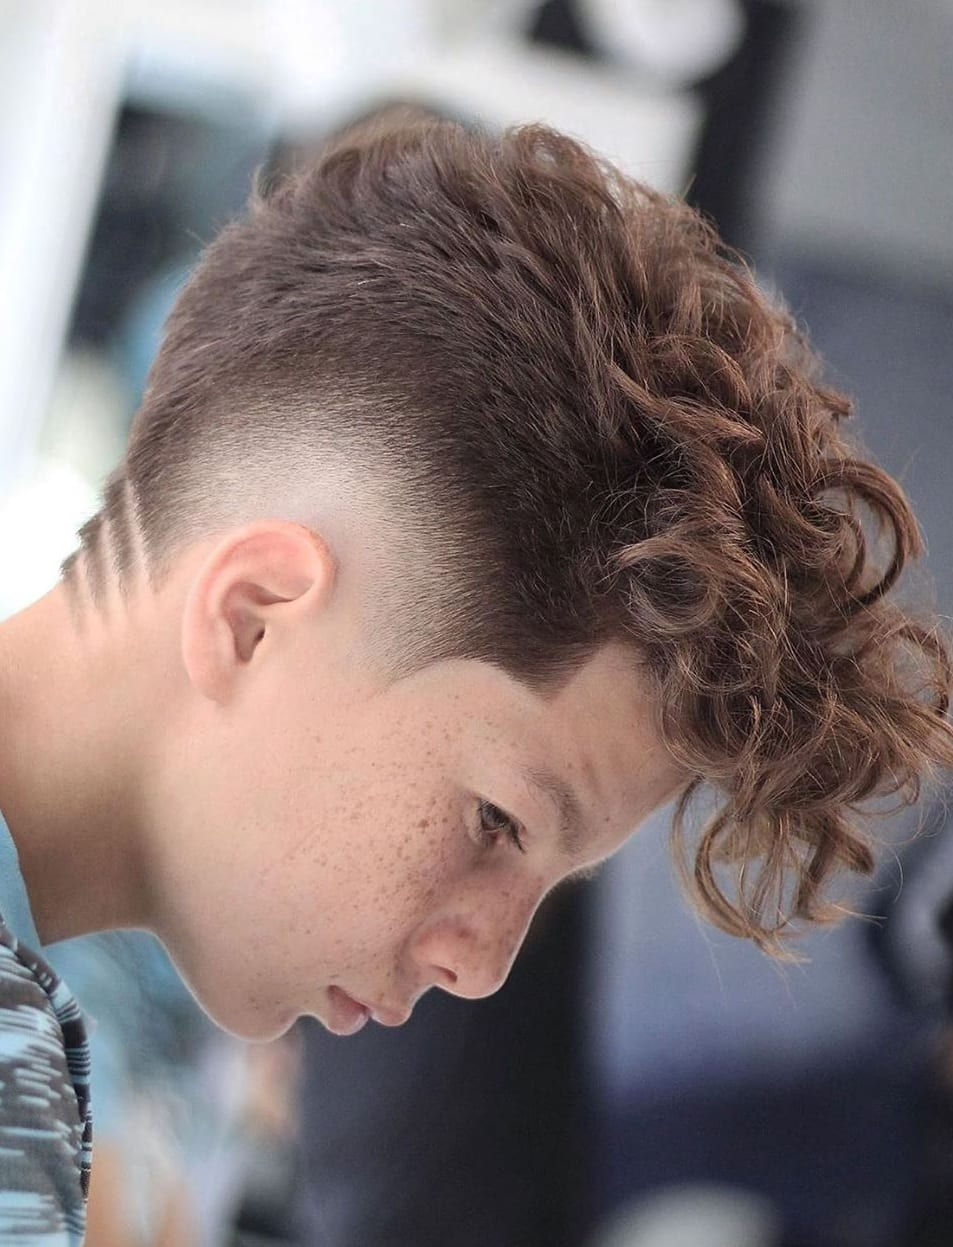 Curly Hair Mohawk And Fade Kids Haircut For Boys ⋆ Best